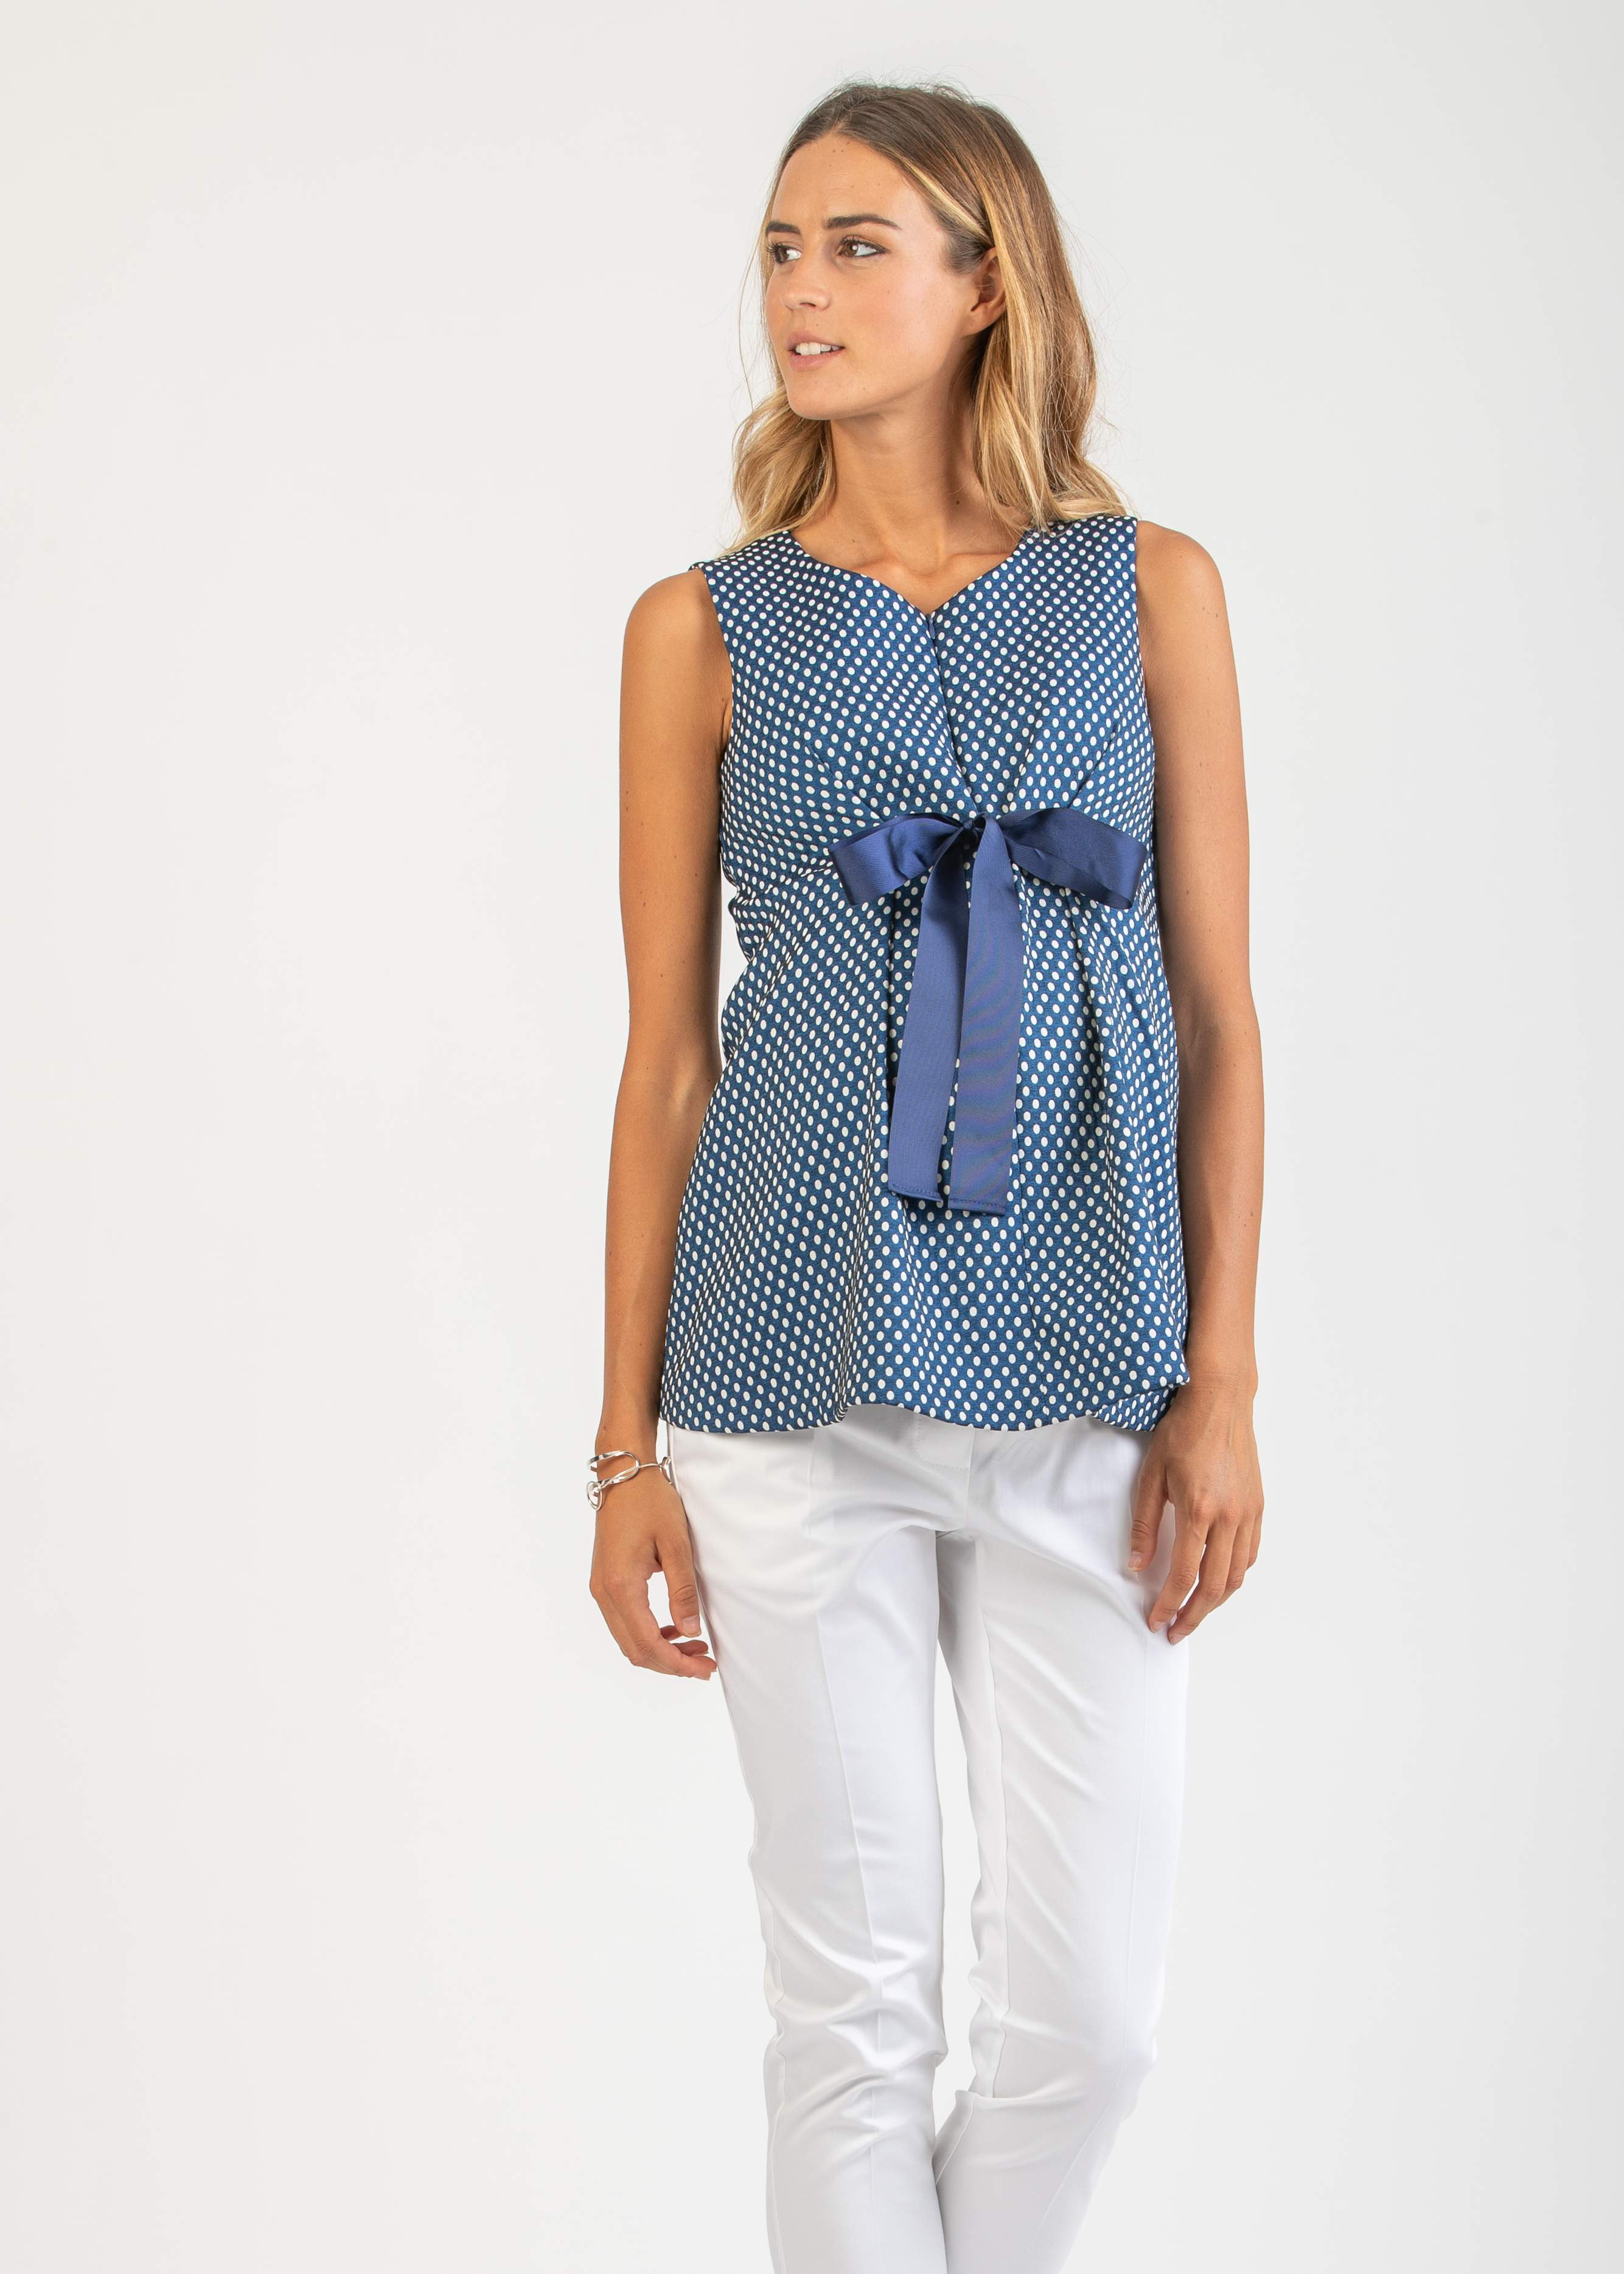 Polka Dot Maternity & Nursing Top with Bow